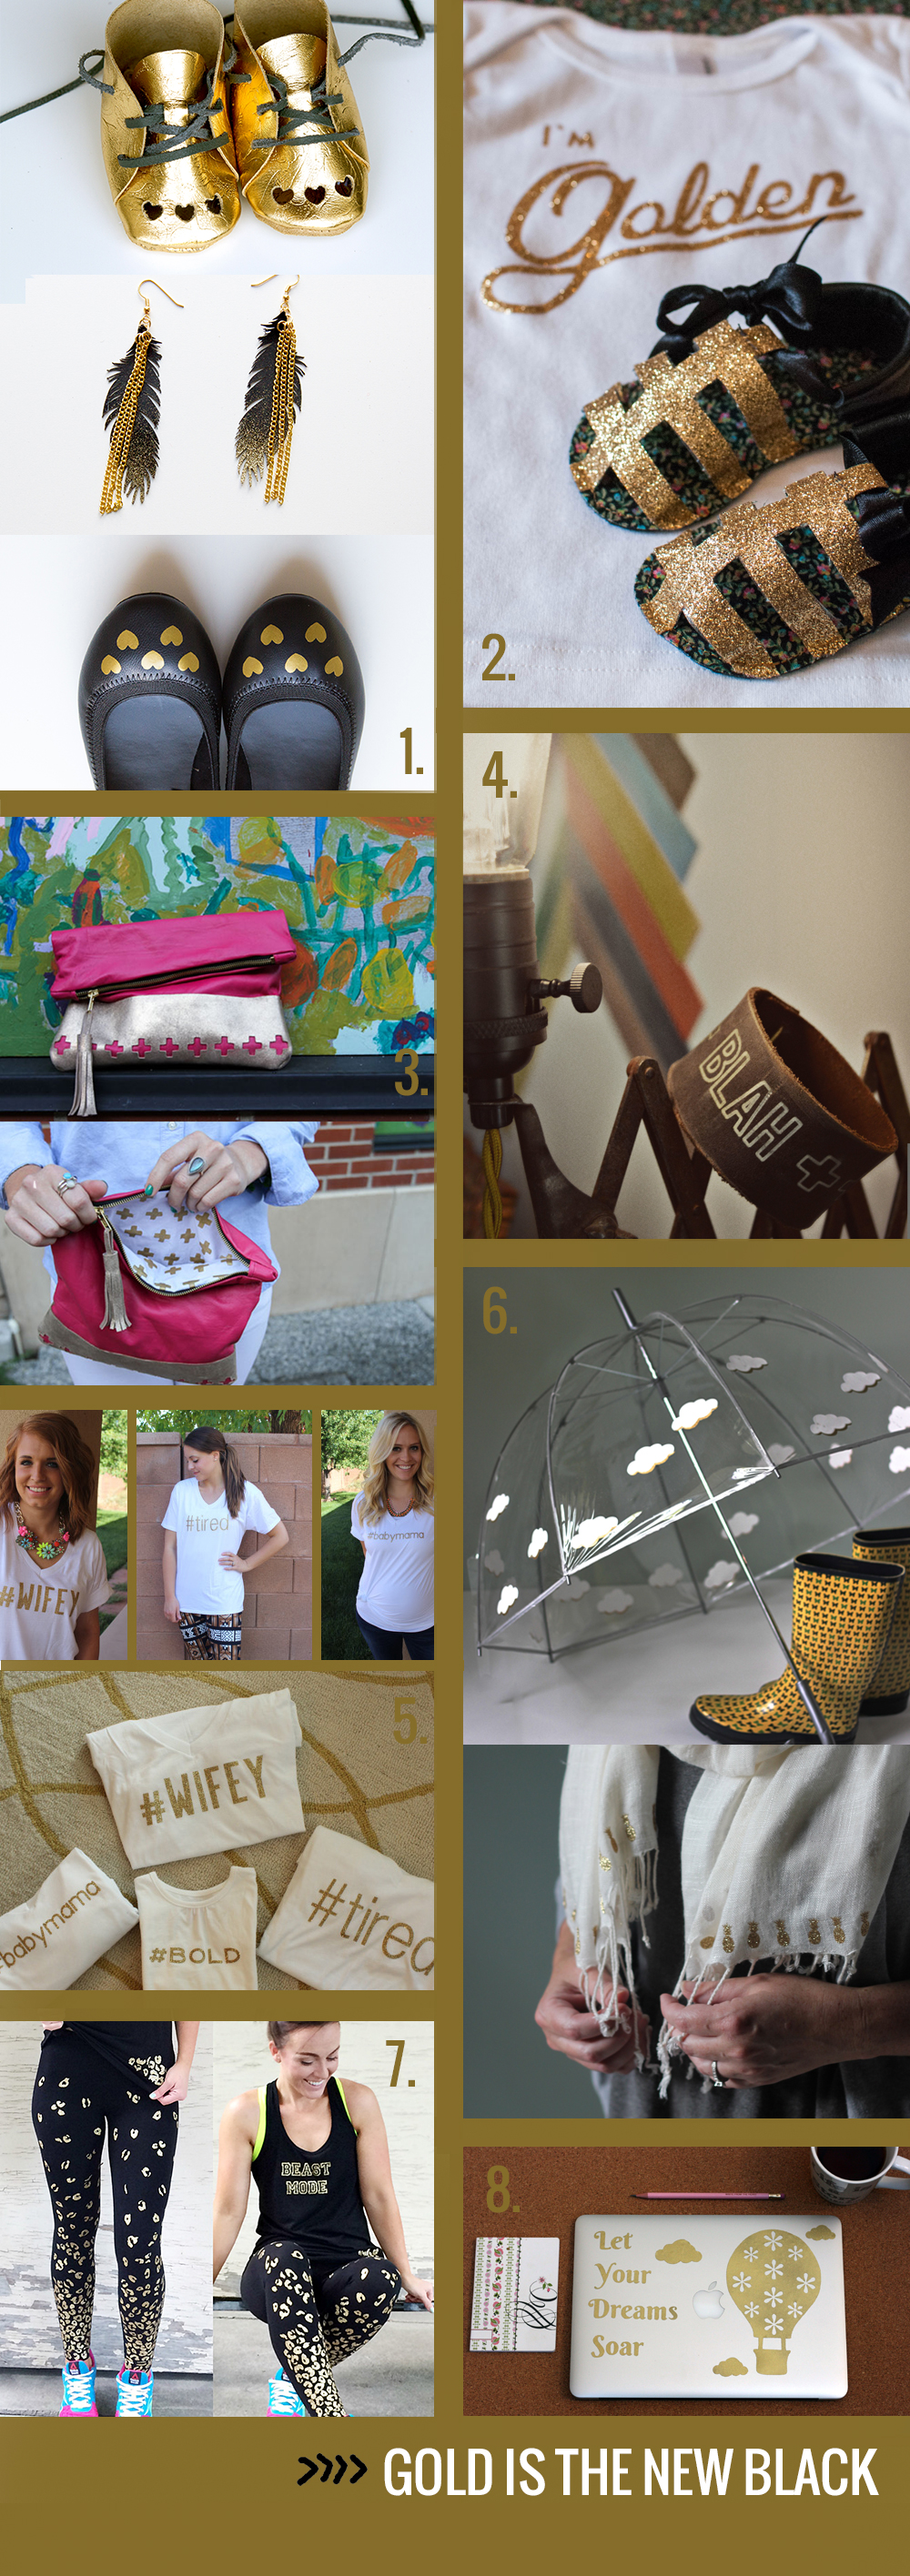 Cricut Design Star Challenge- Come check out all these great projects!